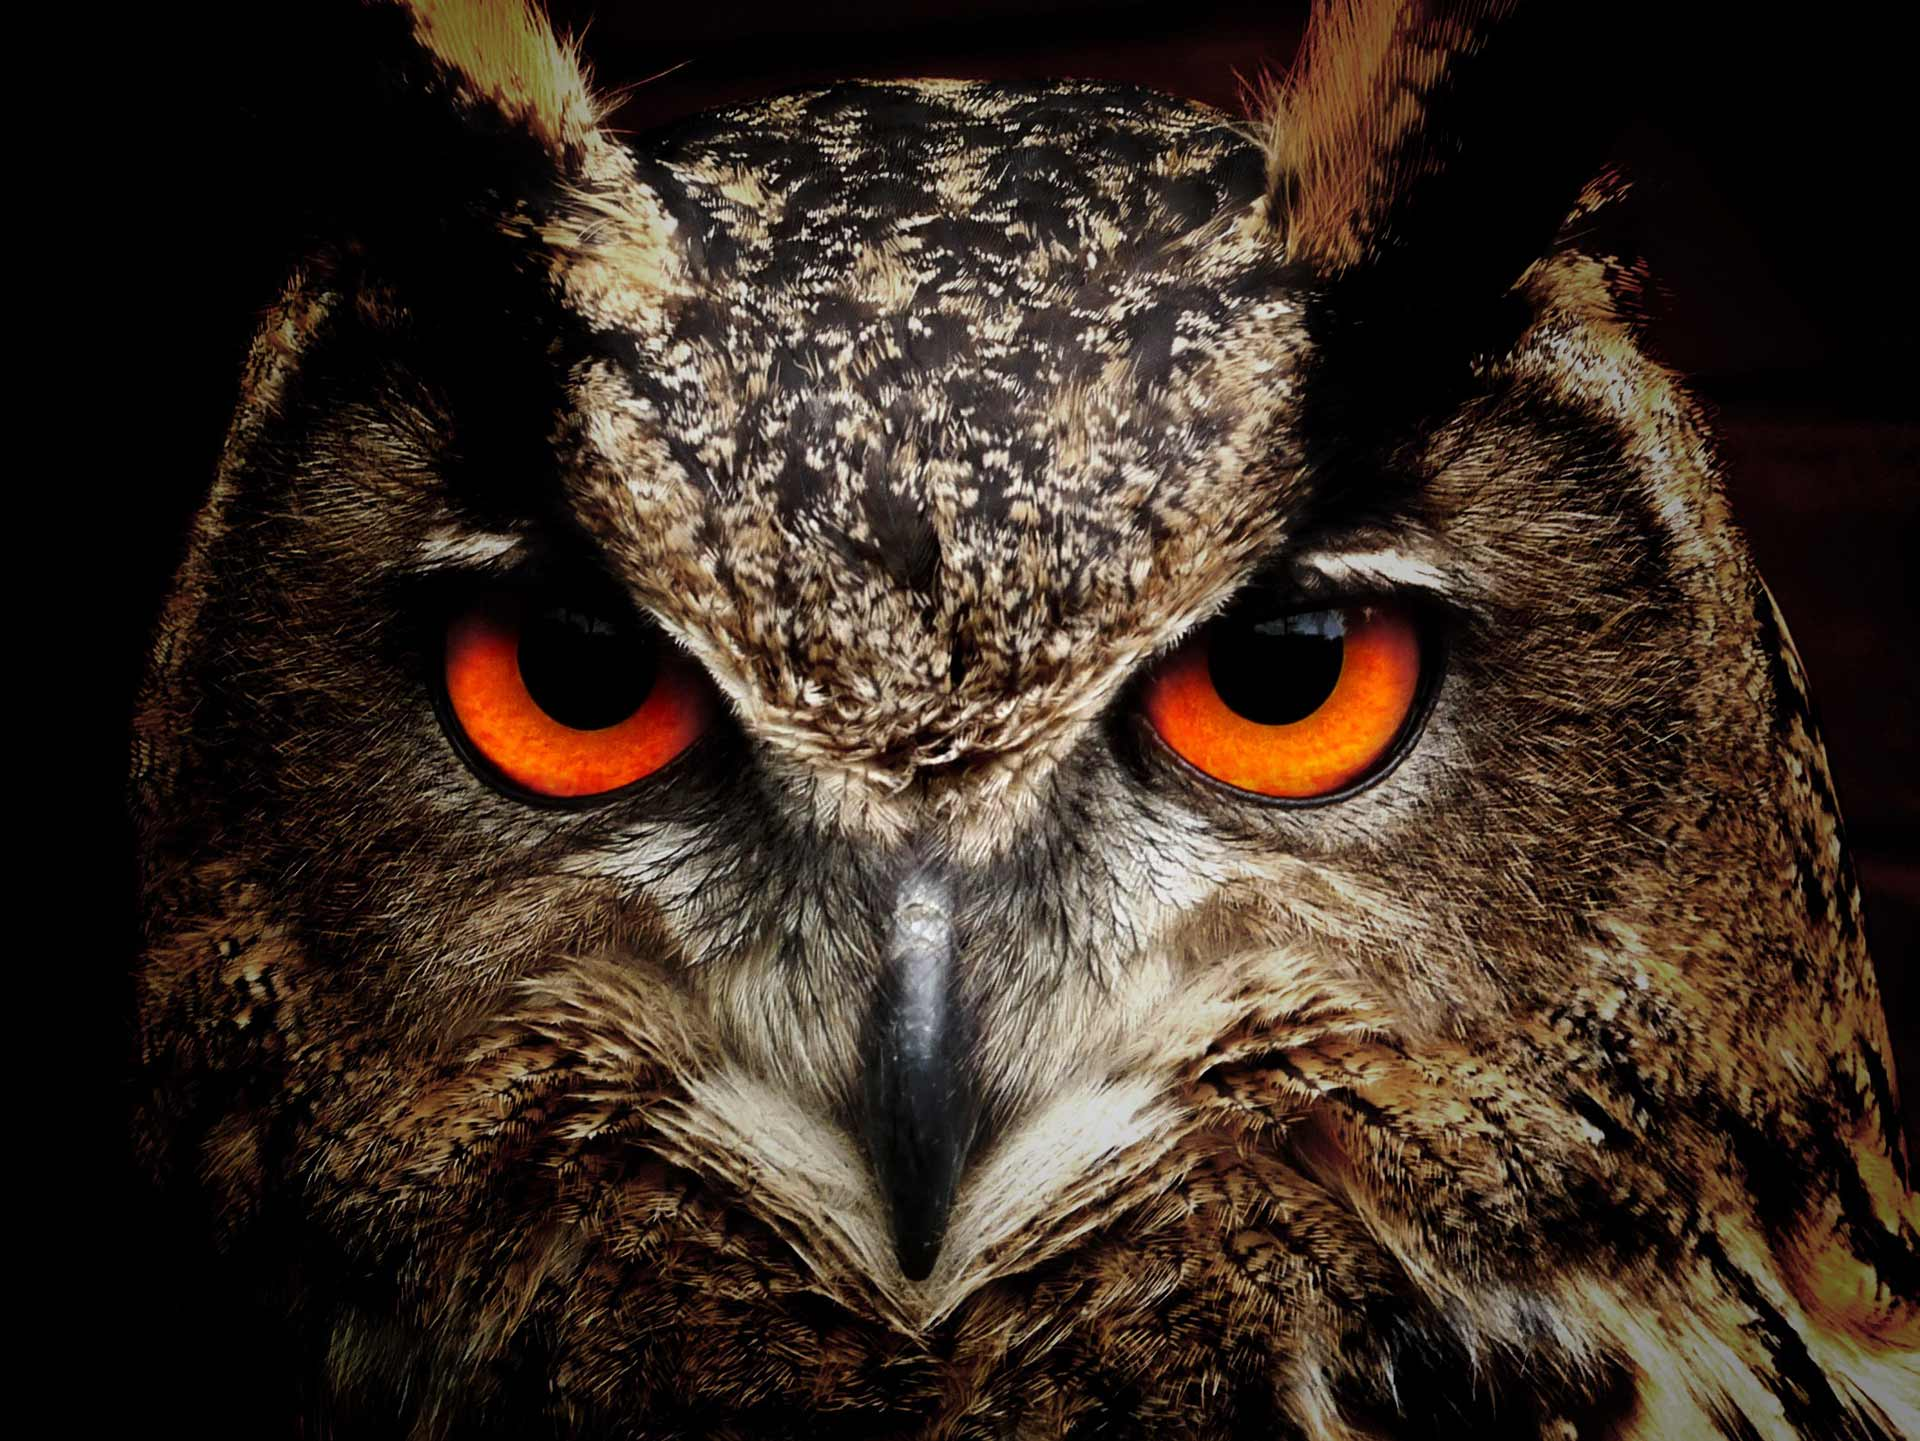 Owl Dream Meaning And Symbolism